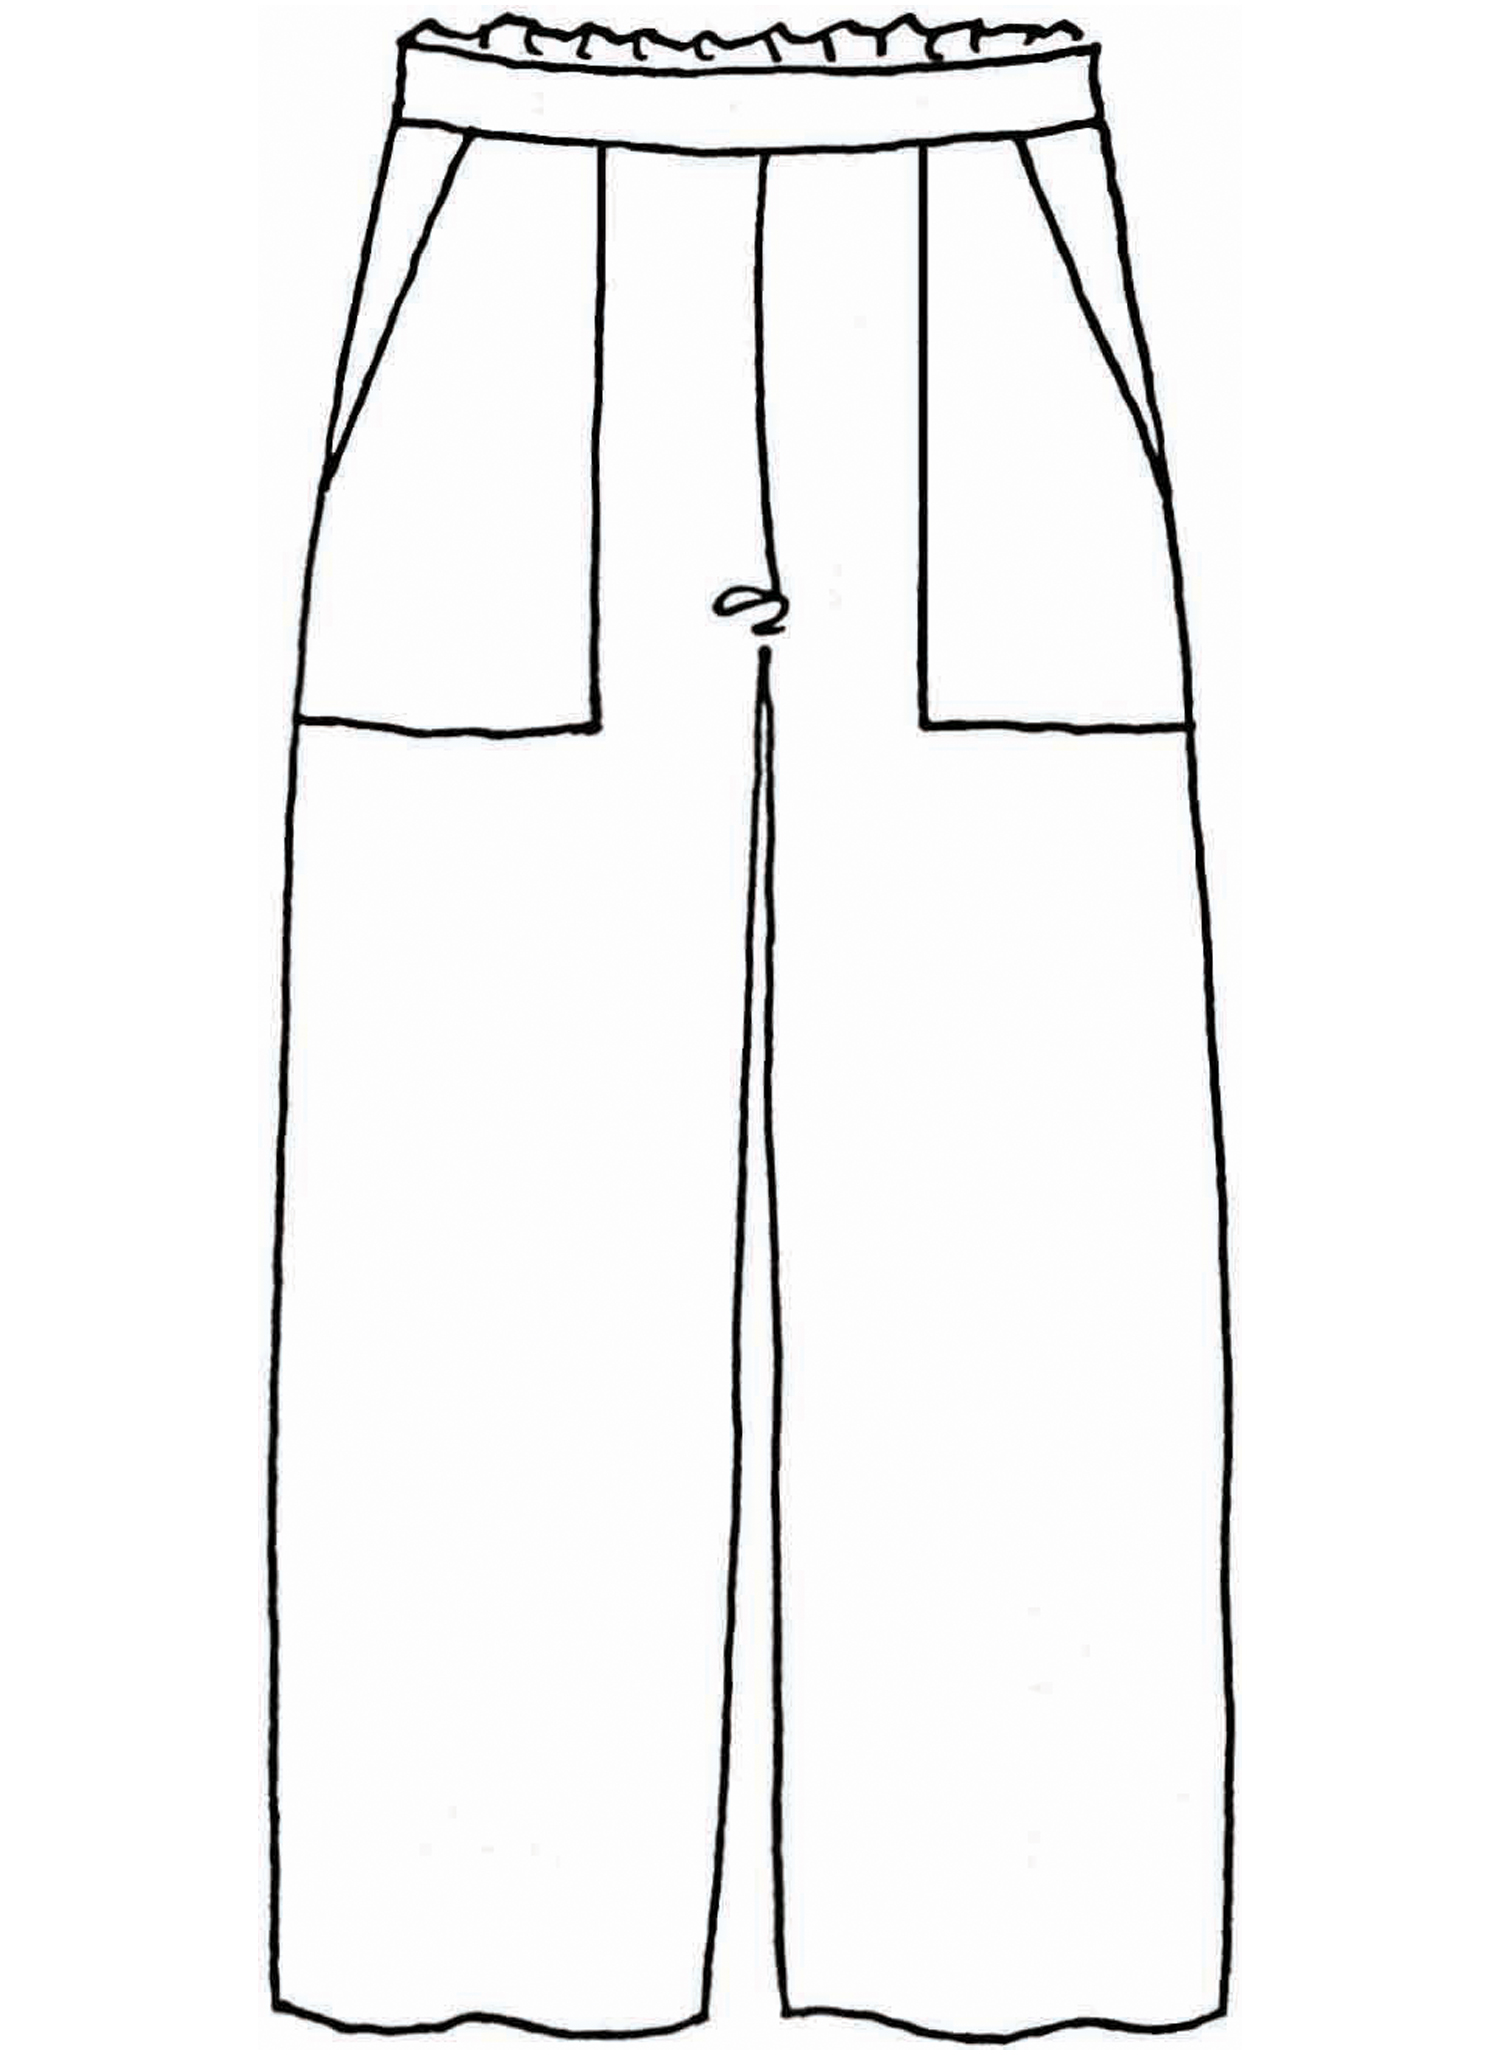 Crop Pant sketch image